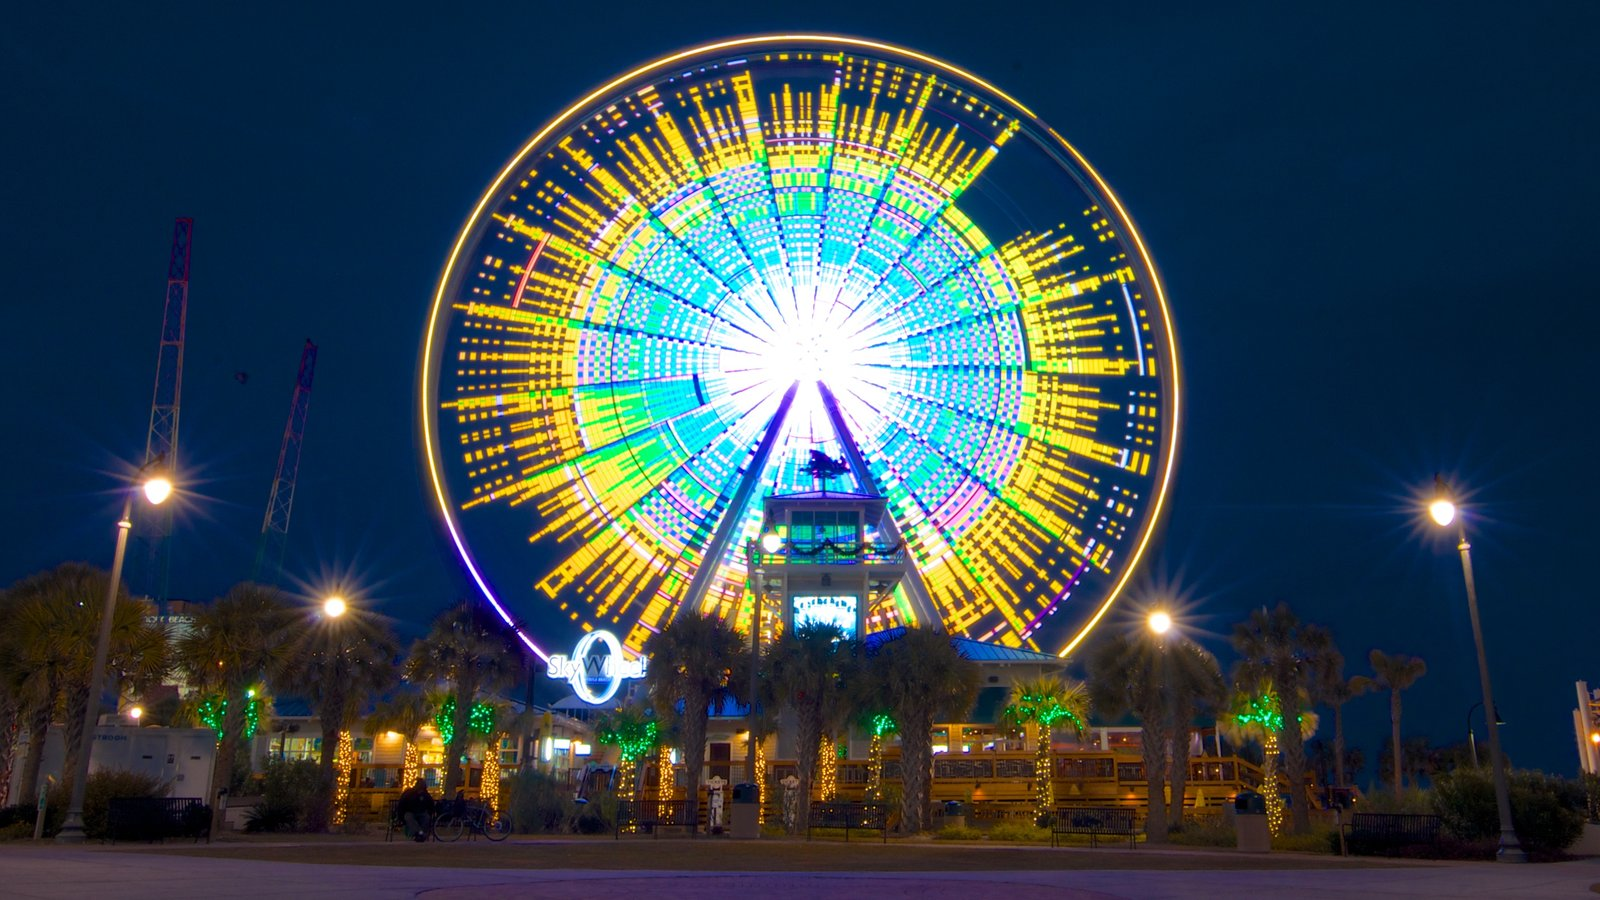 SkyWheel Myrtle Beach Featuring Night Scenes And Rides